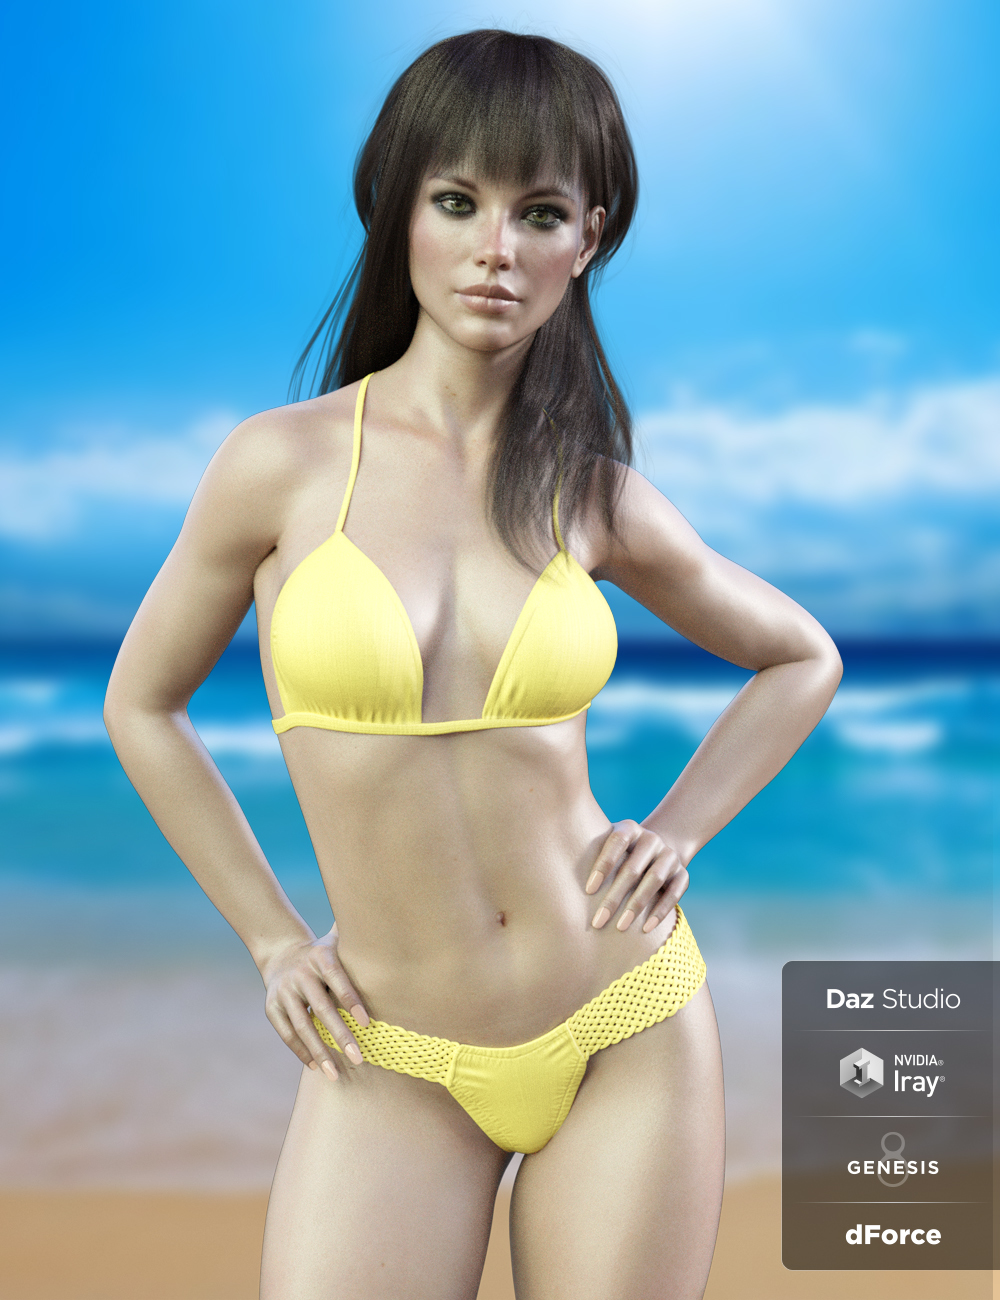 X-Fashion Braided Bikini for Genesis 8 Females